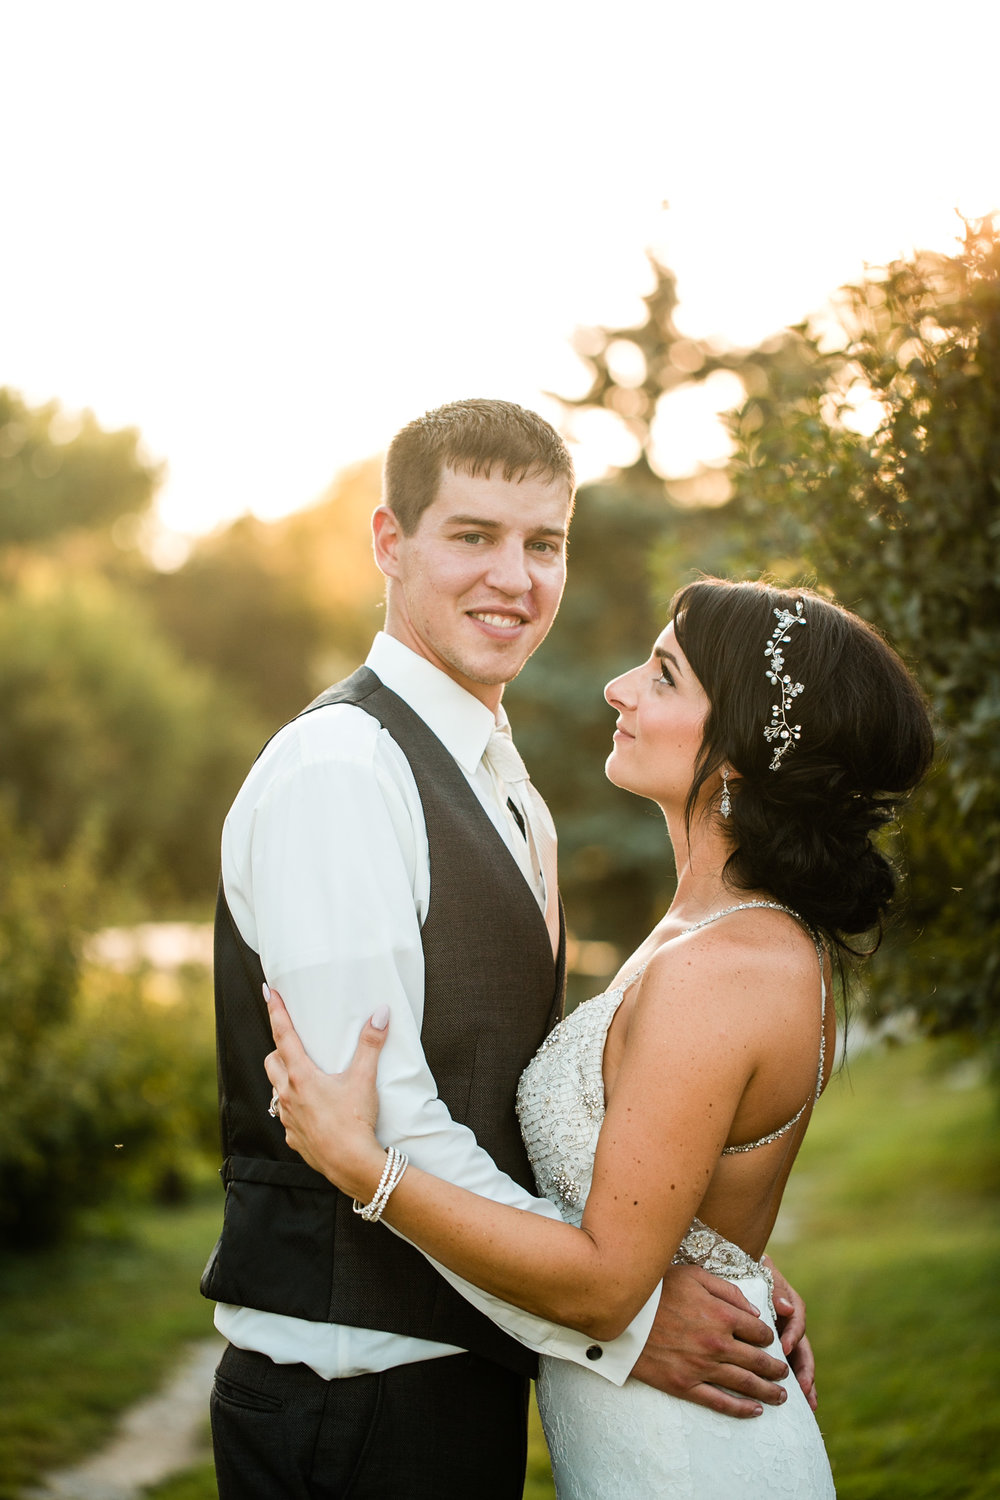 bride and groom wedding photos outside at sunset